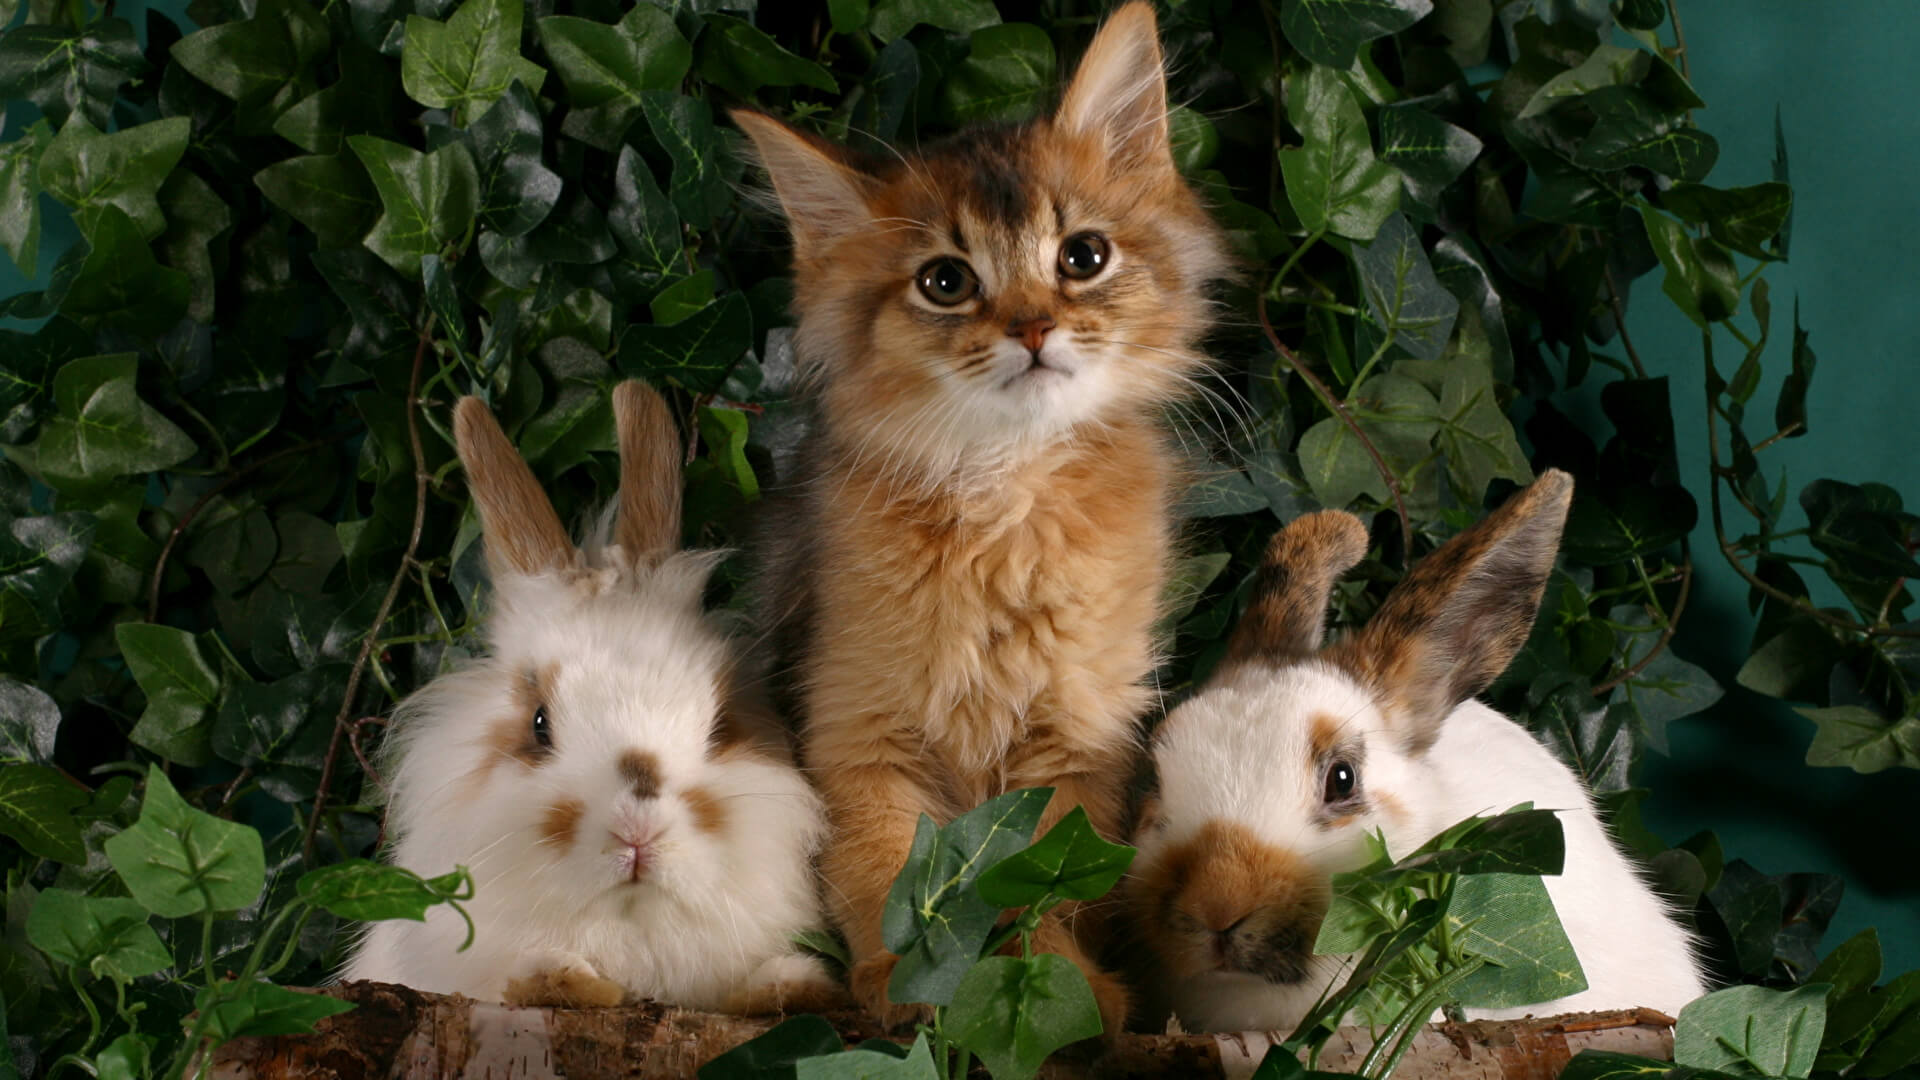 Cat and rabbits